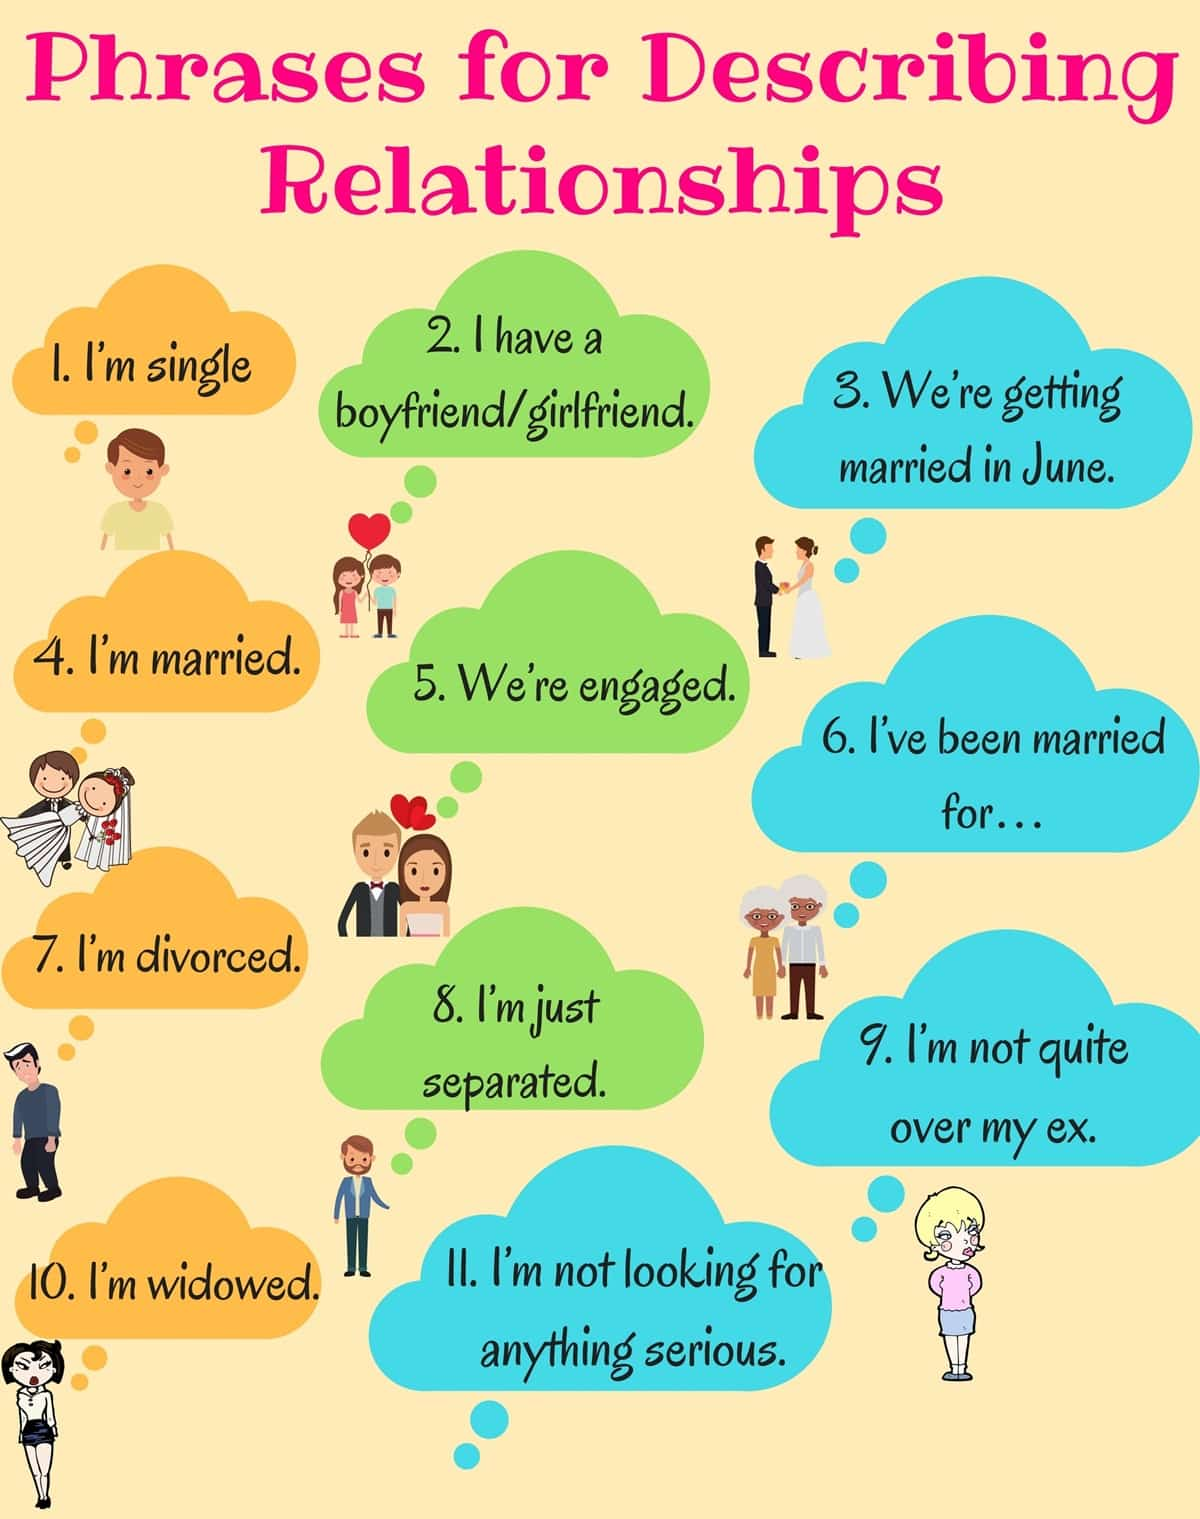 Phrases for Describing Relationships